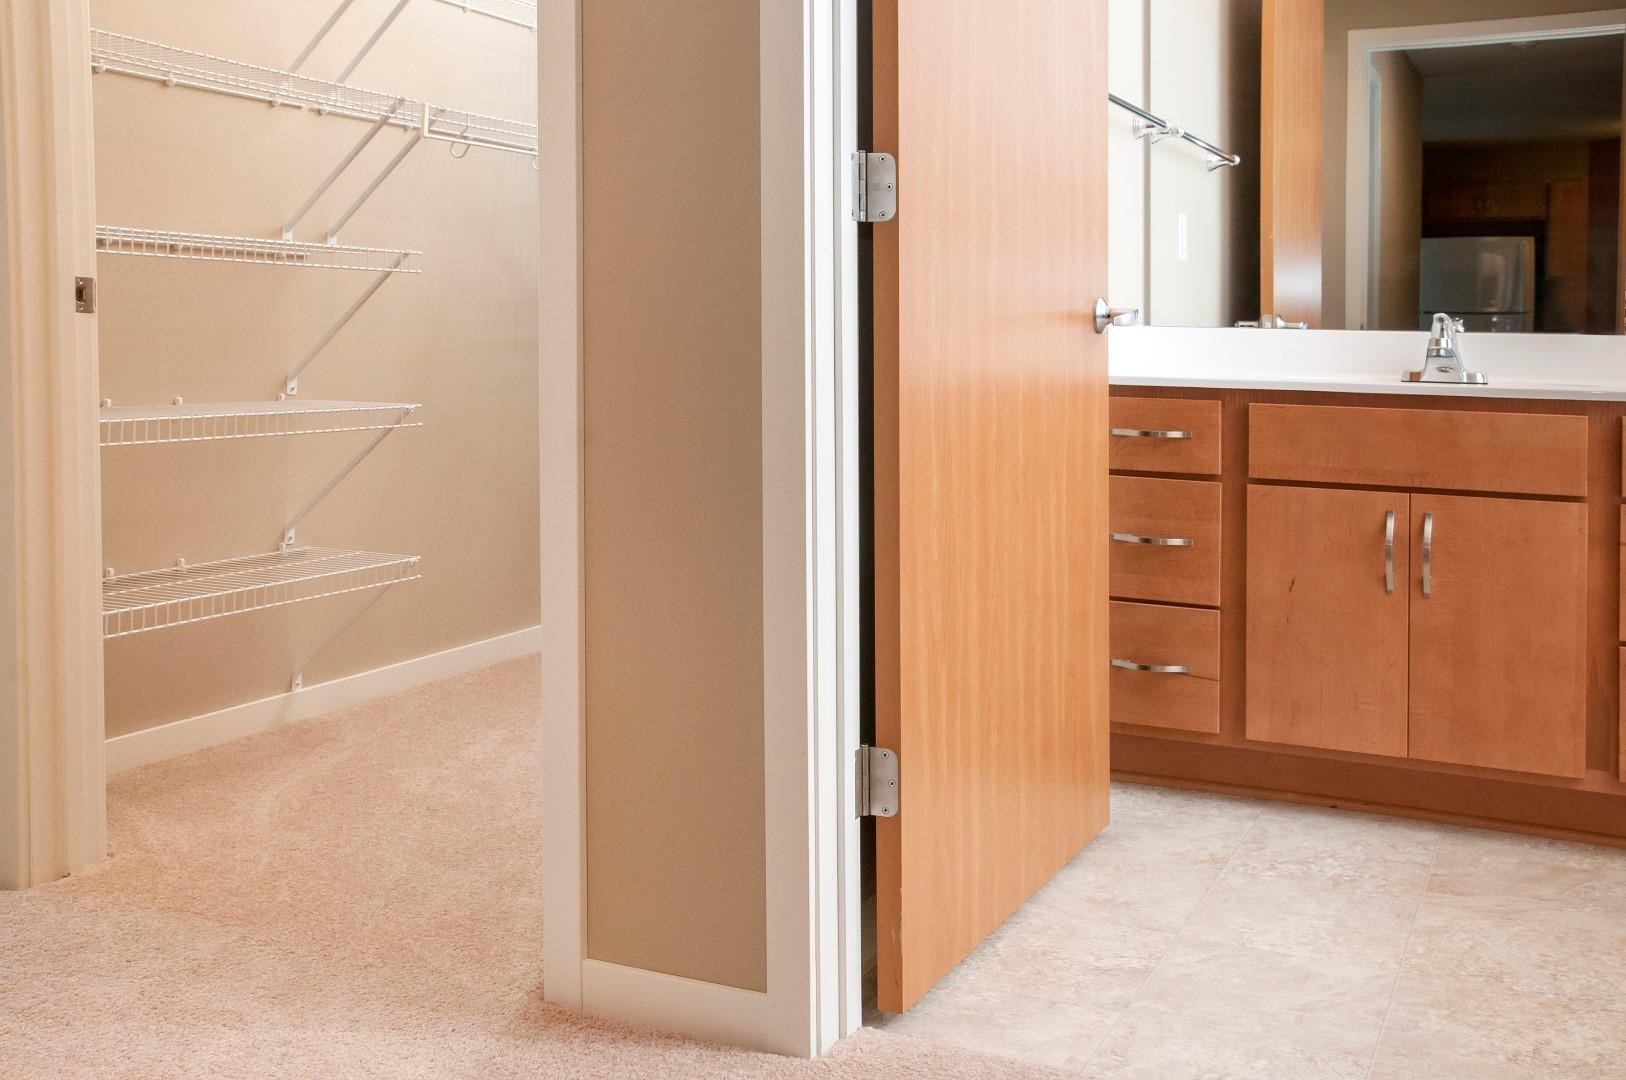 Bathroom and Walking-in Closet Connected to Master Bedroom at Carver Crossing Apartment